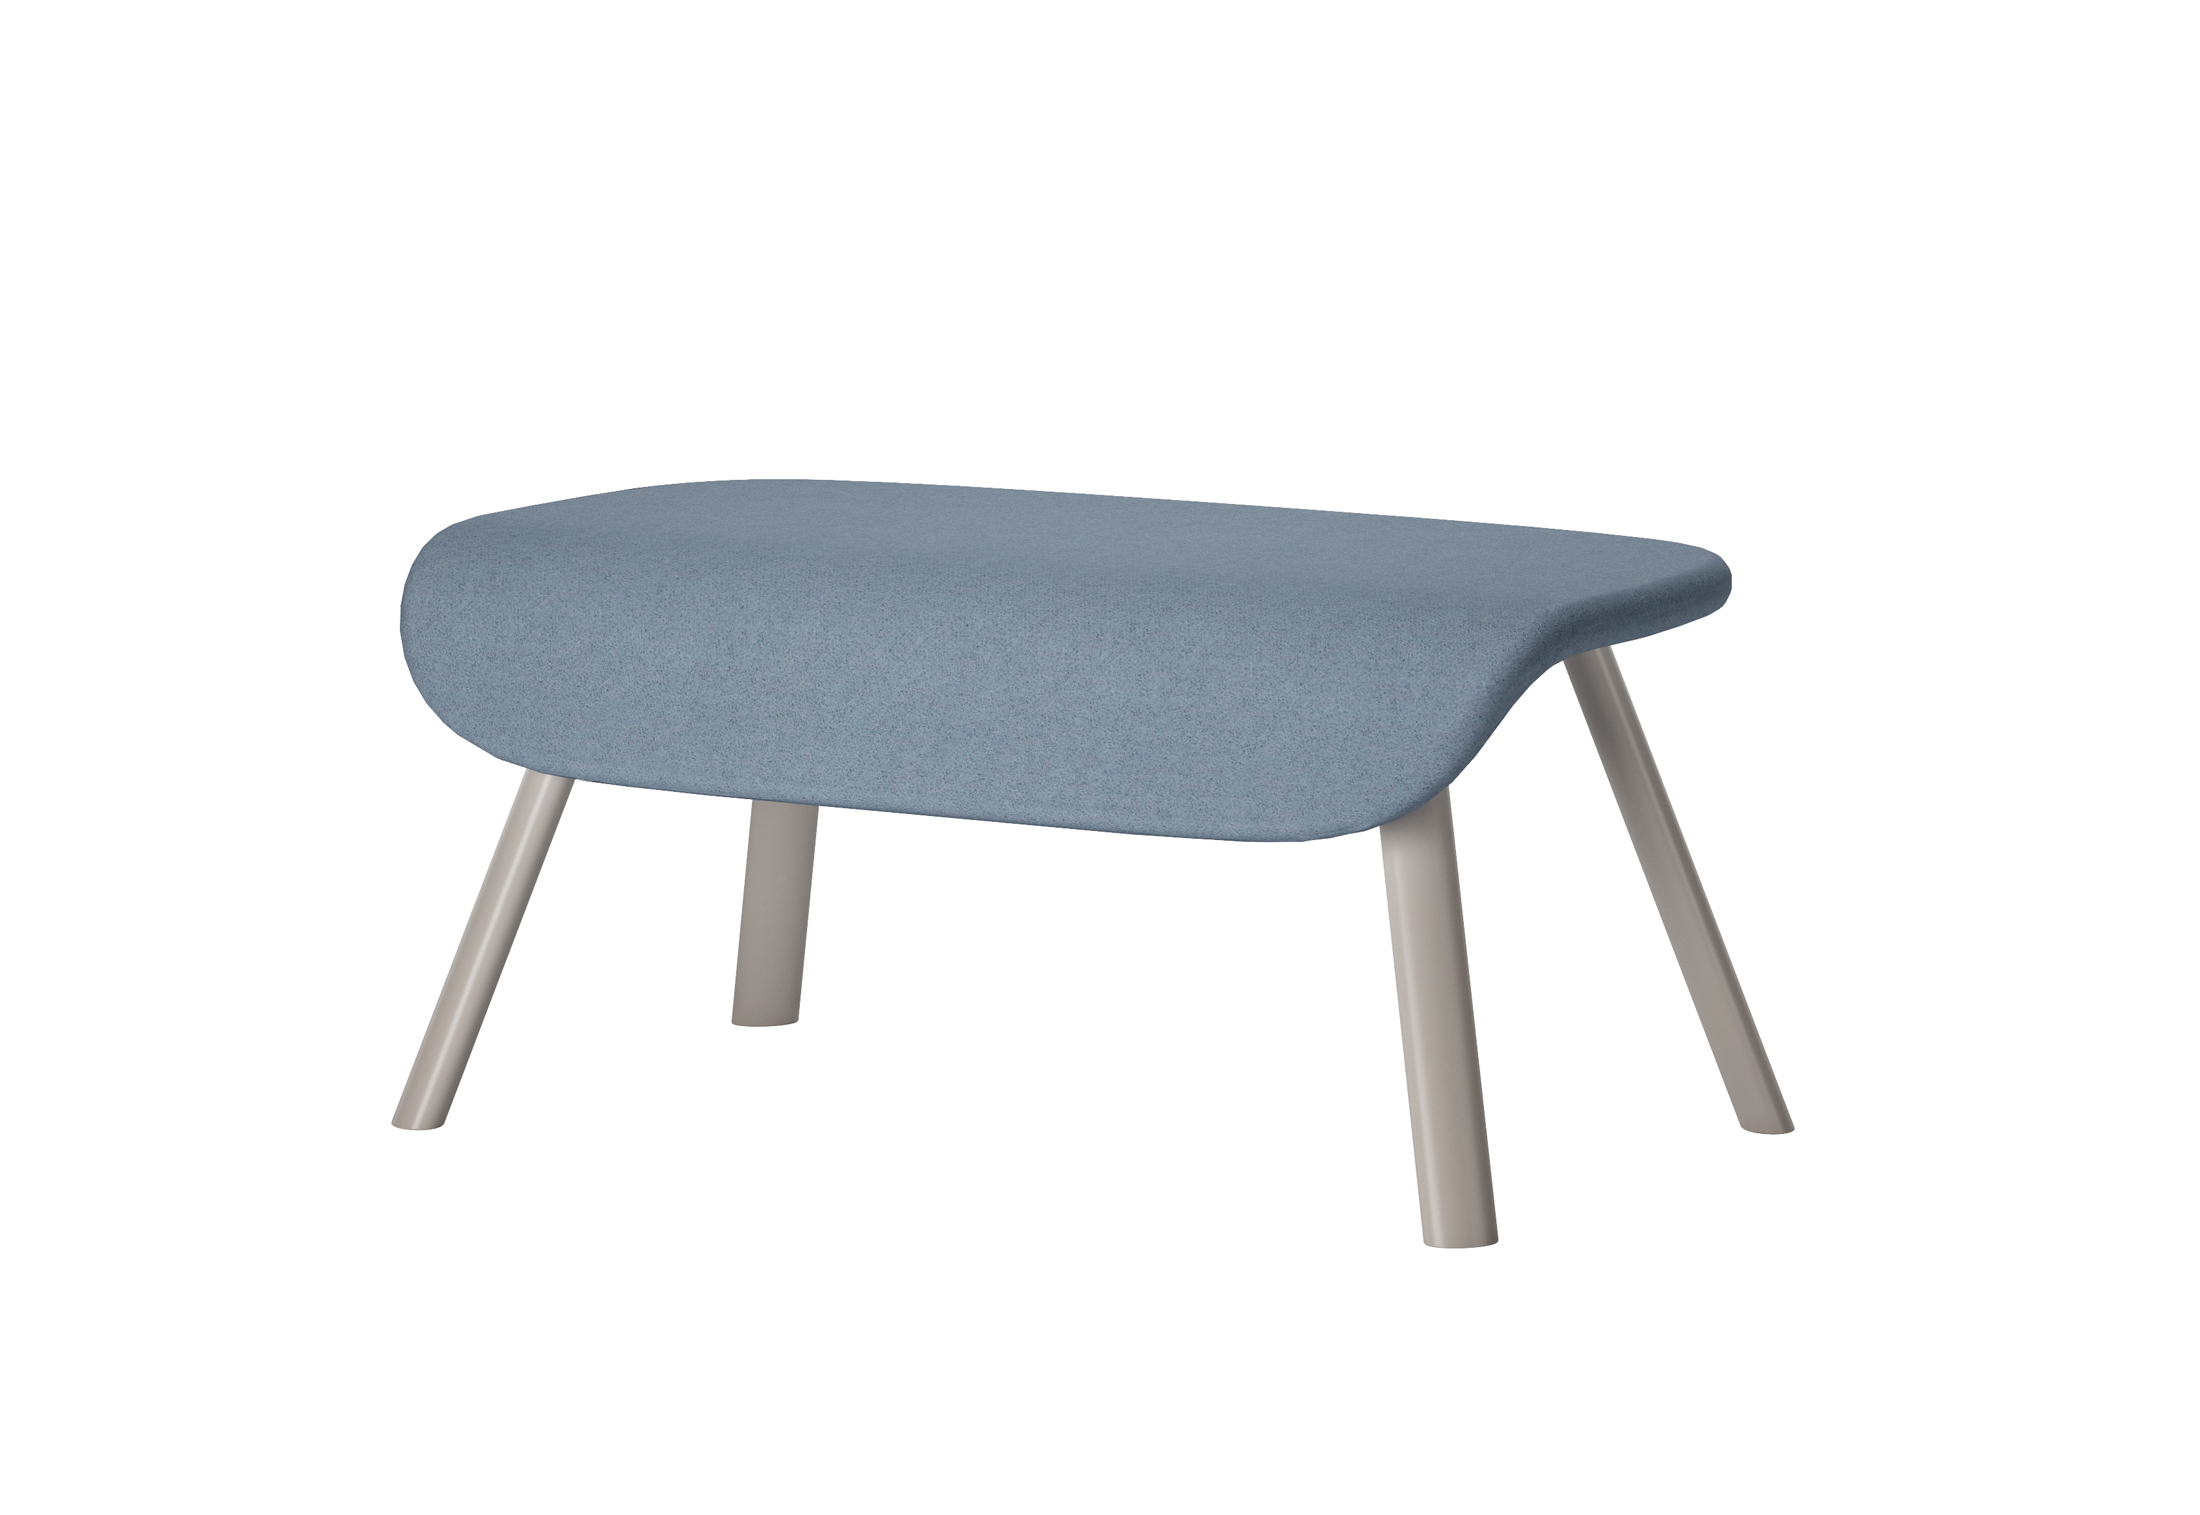 Gran Kobi Collection by Patrick Norguet for Alias